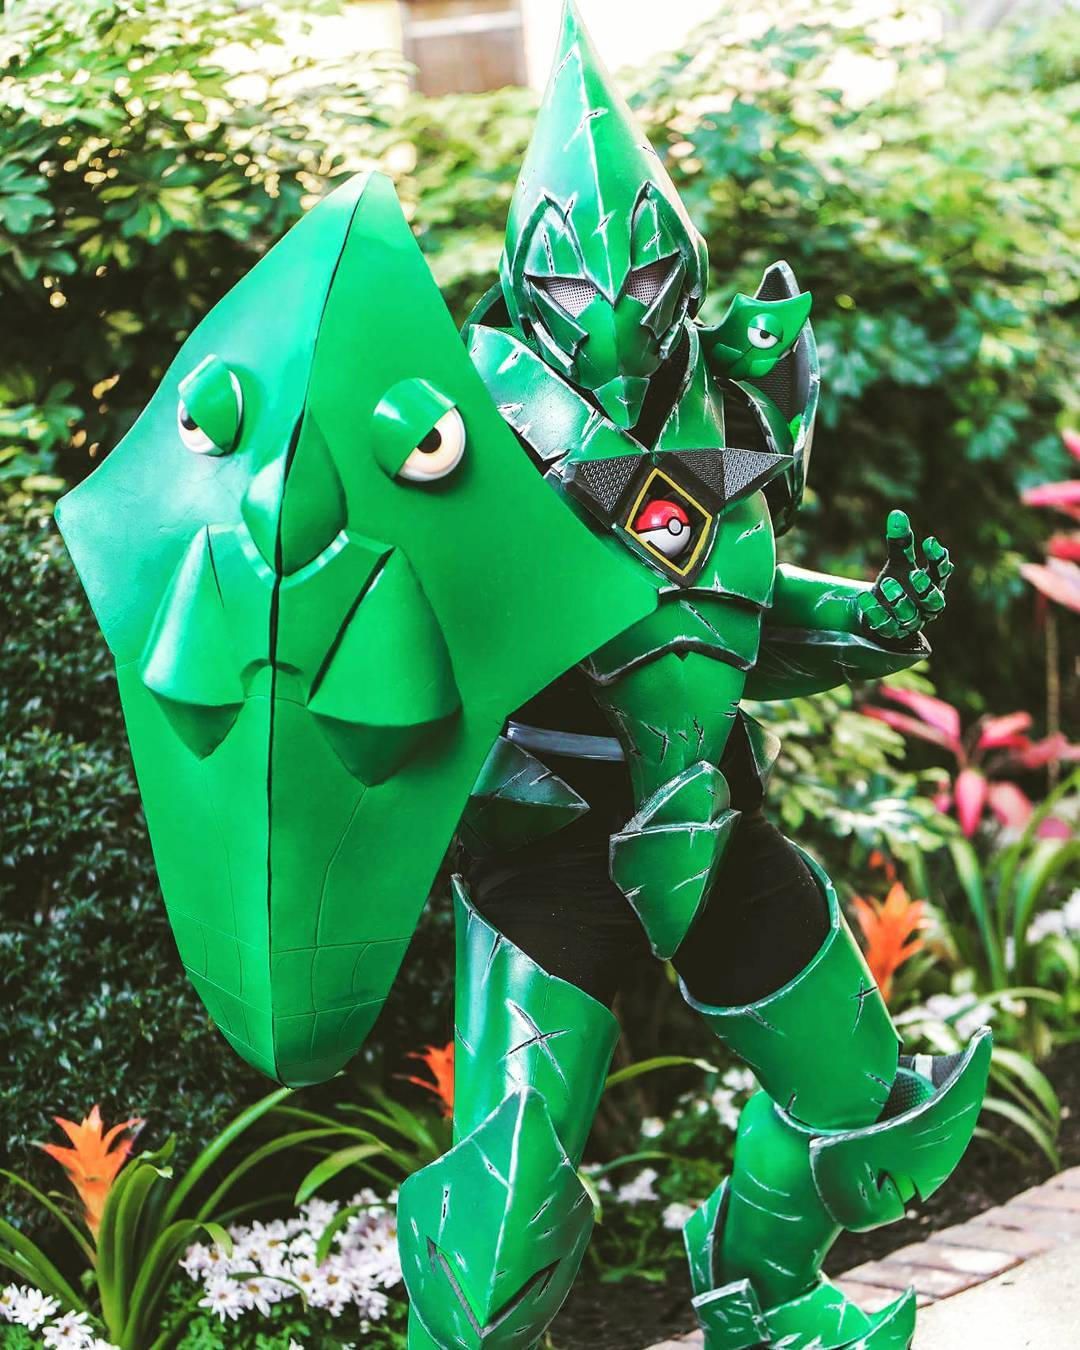 Who said Metapod had to evolve to fight back against the oppression of Pokemon trainers?